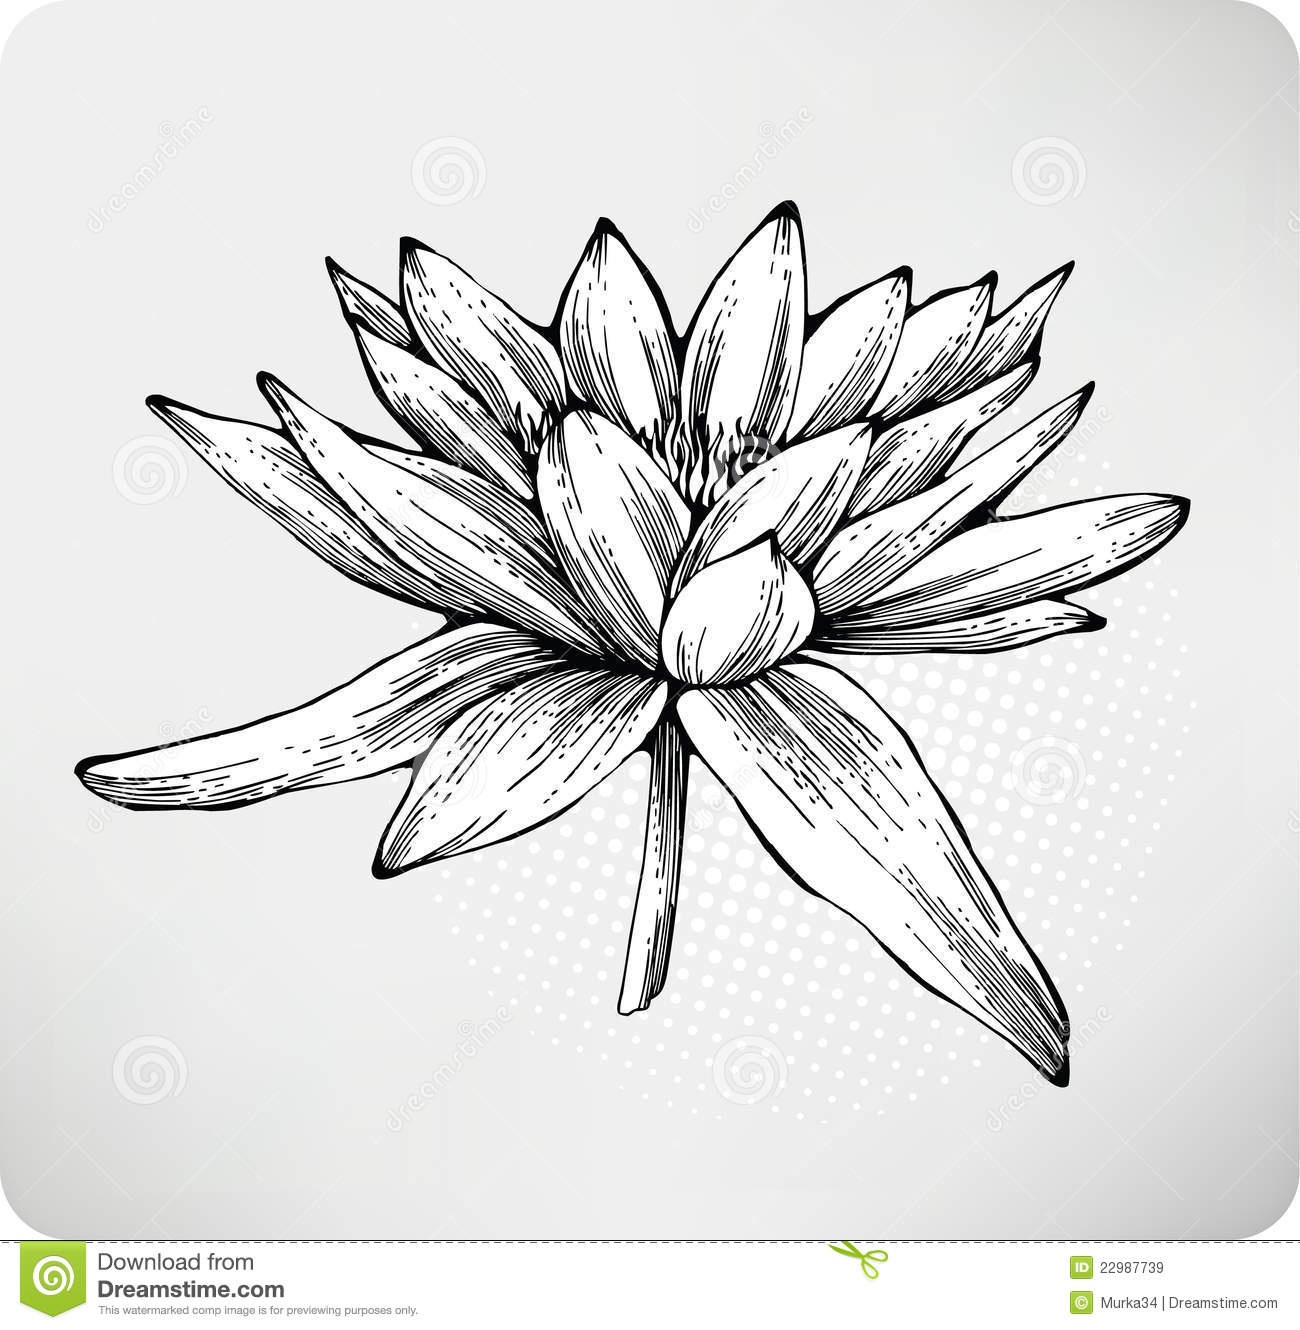 Flowers white water lily hand drawing stock vector illustration of flowers white water lily hand drawing izmirmasajfo